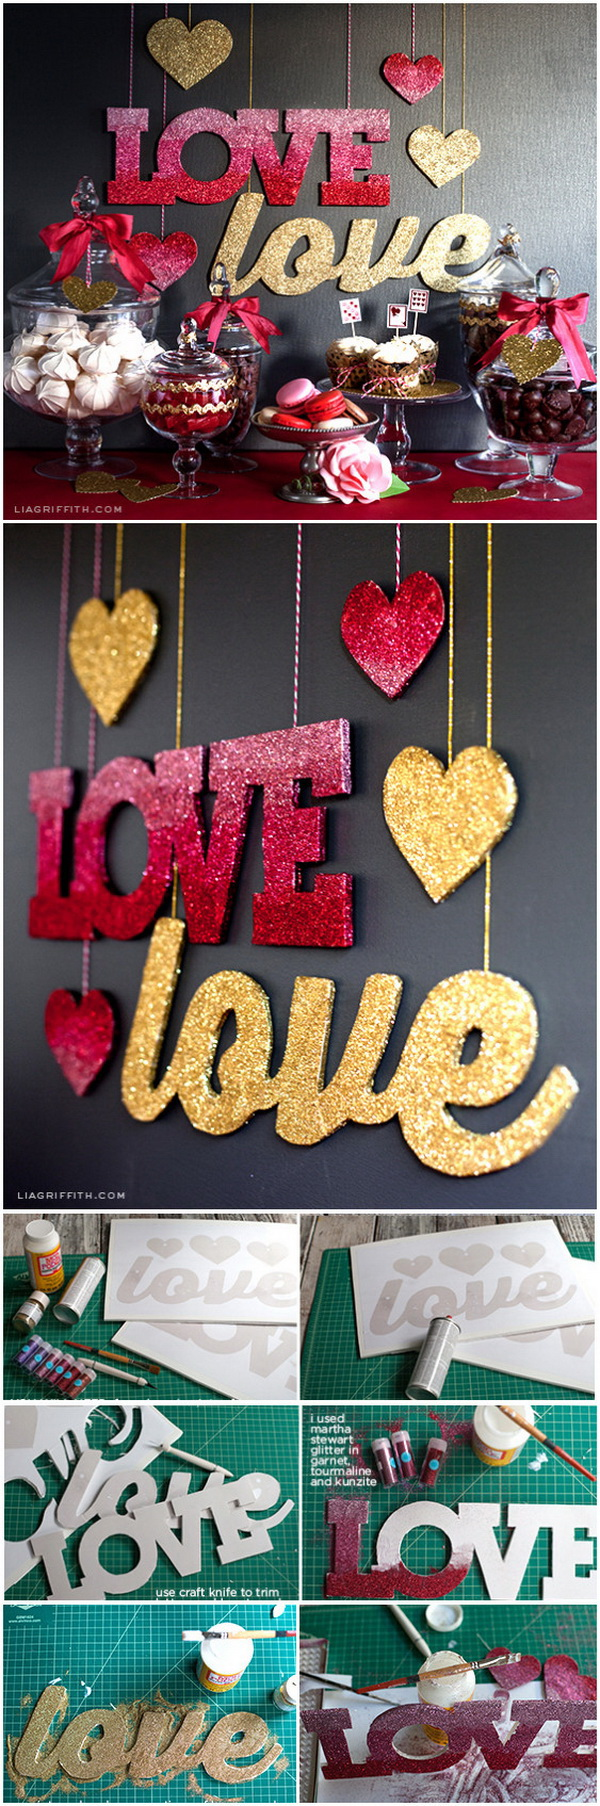 DIY Love Banners in Pink Ombré and Gold Glitter. Easy to make this love banner decorated with pink ombre and gold glitters. Perfect decoration for wedding, New Year's Eve or Valentines Day!